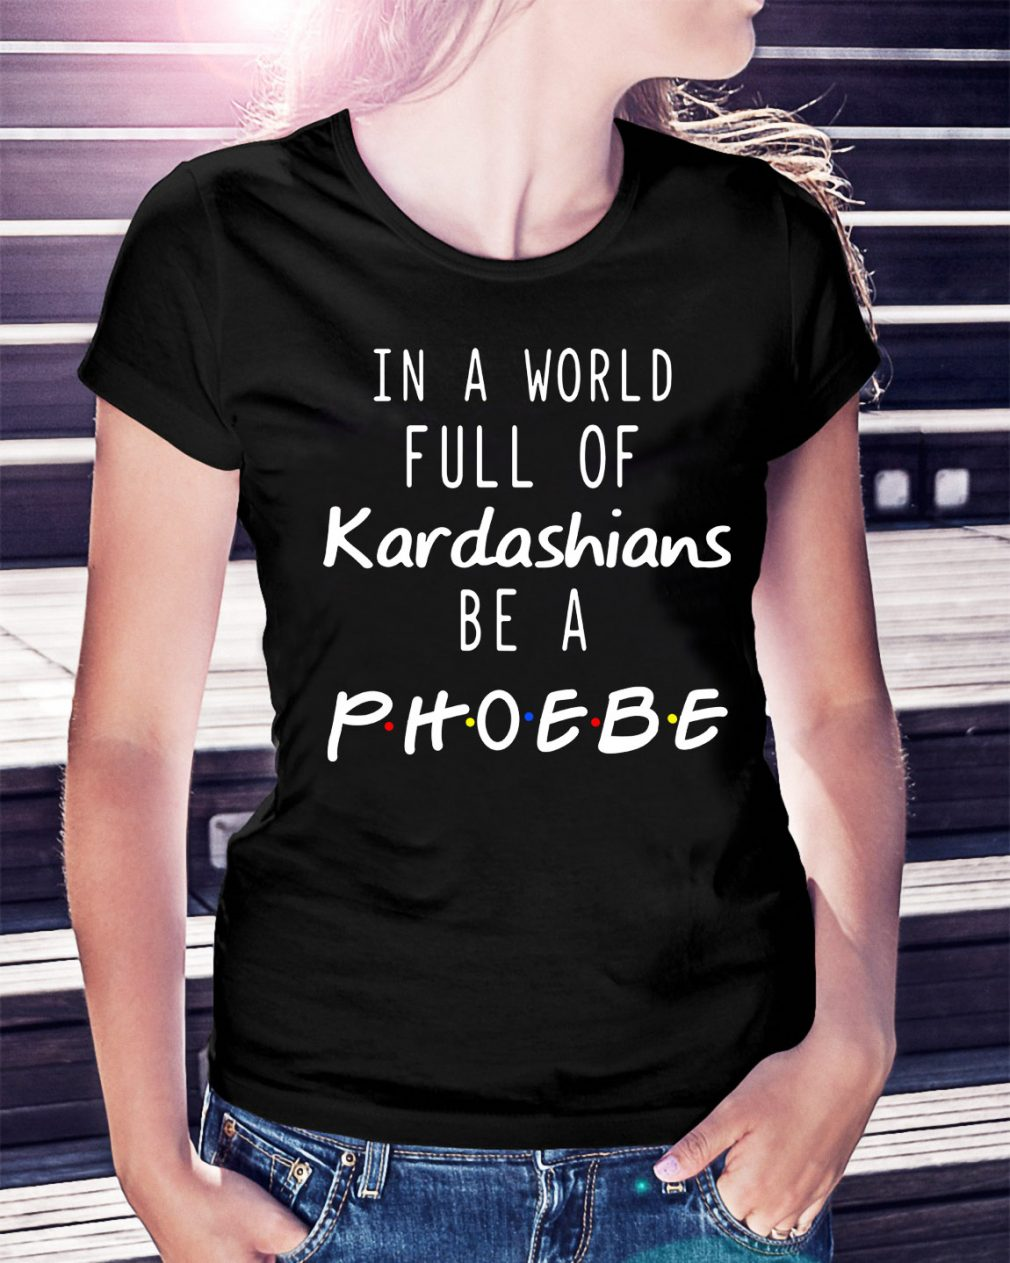 In a world full of Kardashians be a Phoebe Ladies Tee